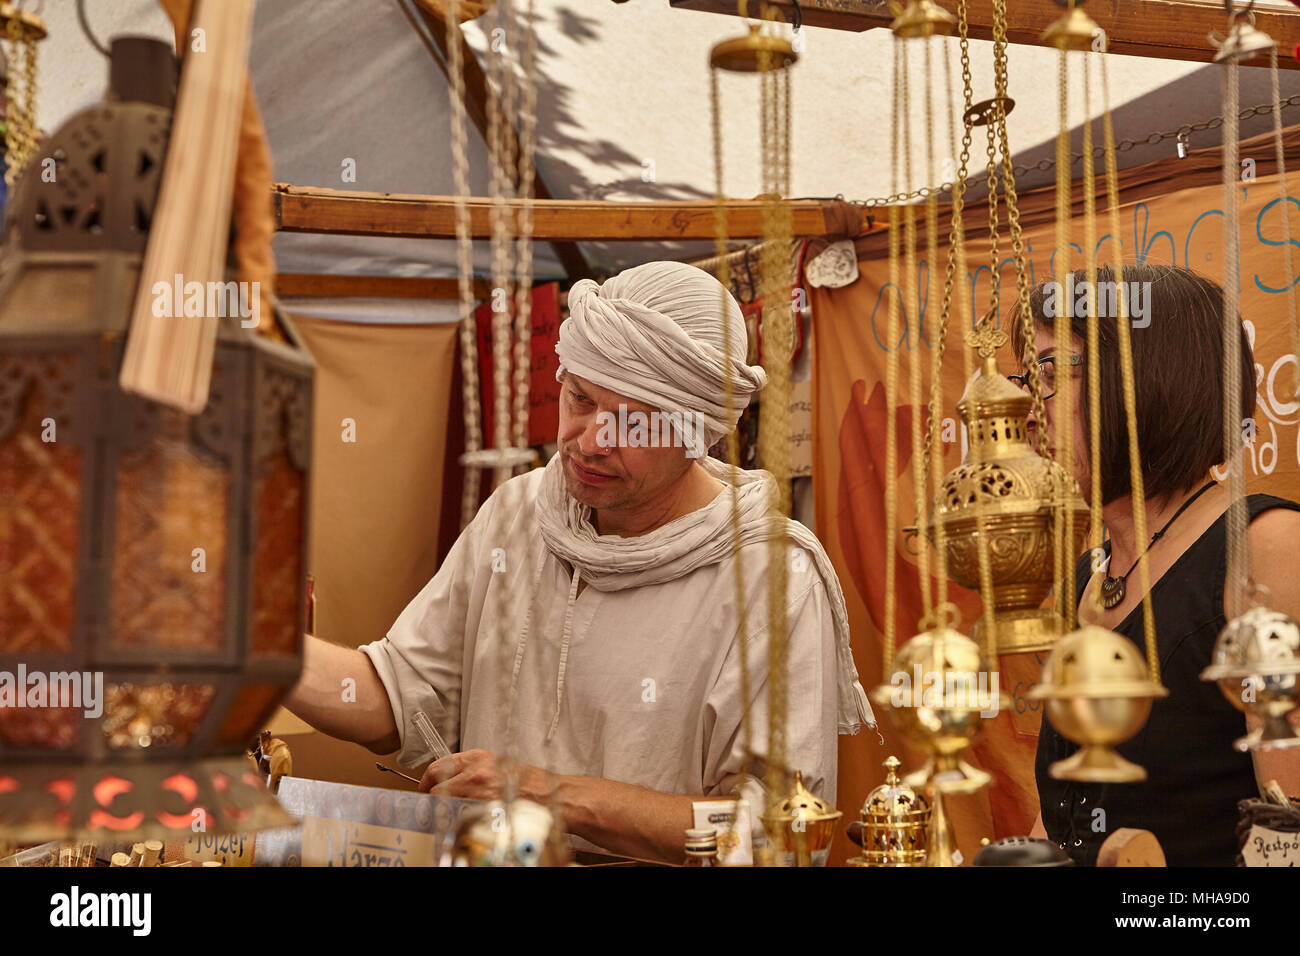 Medieval Dealer Selling Incense and Myrrh with Ornaments in the Foreground - Stock Image